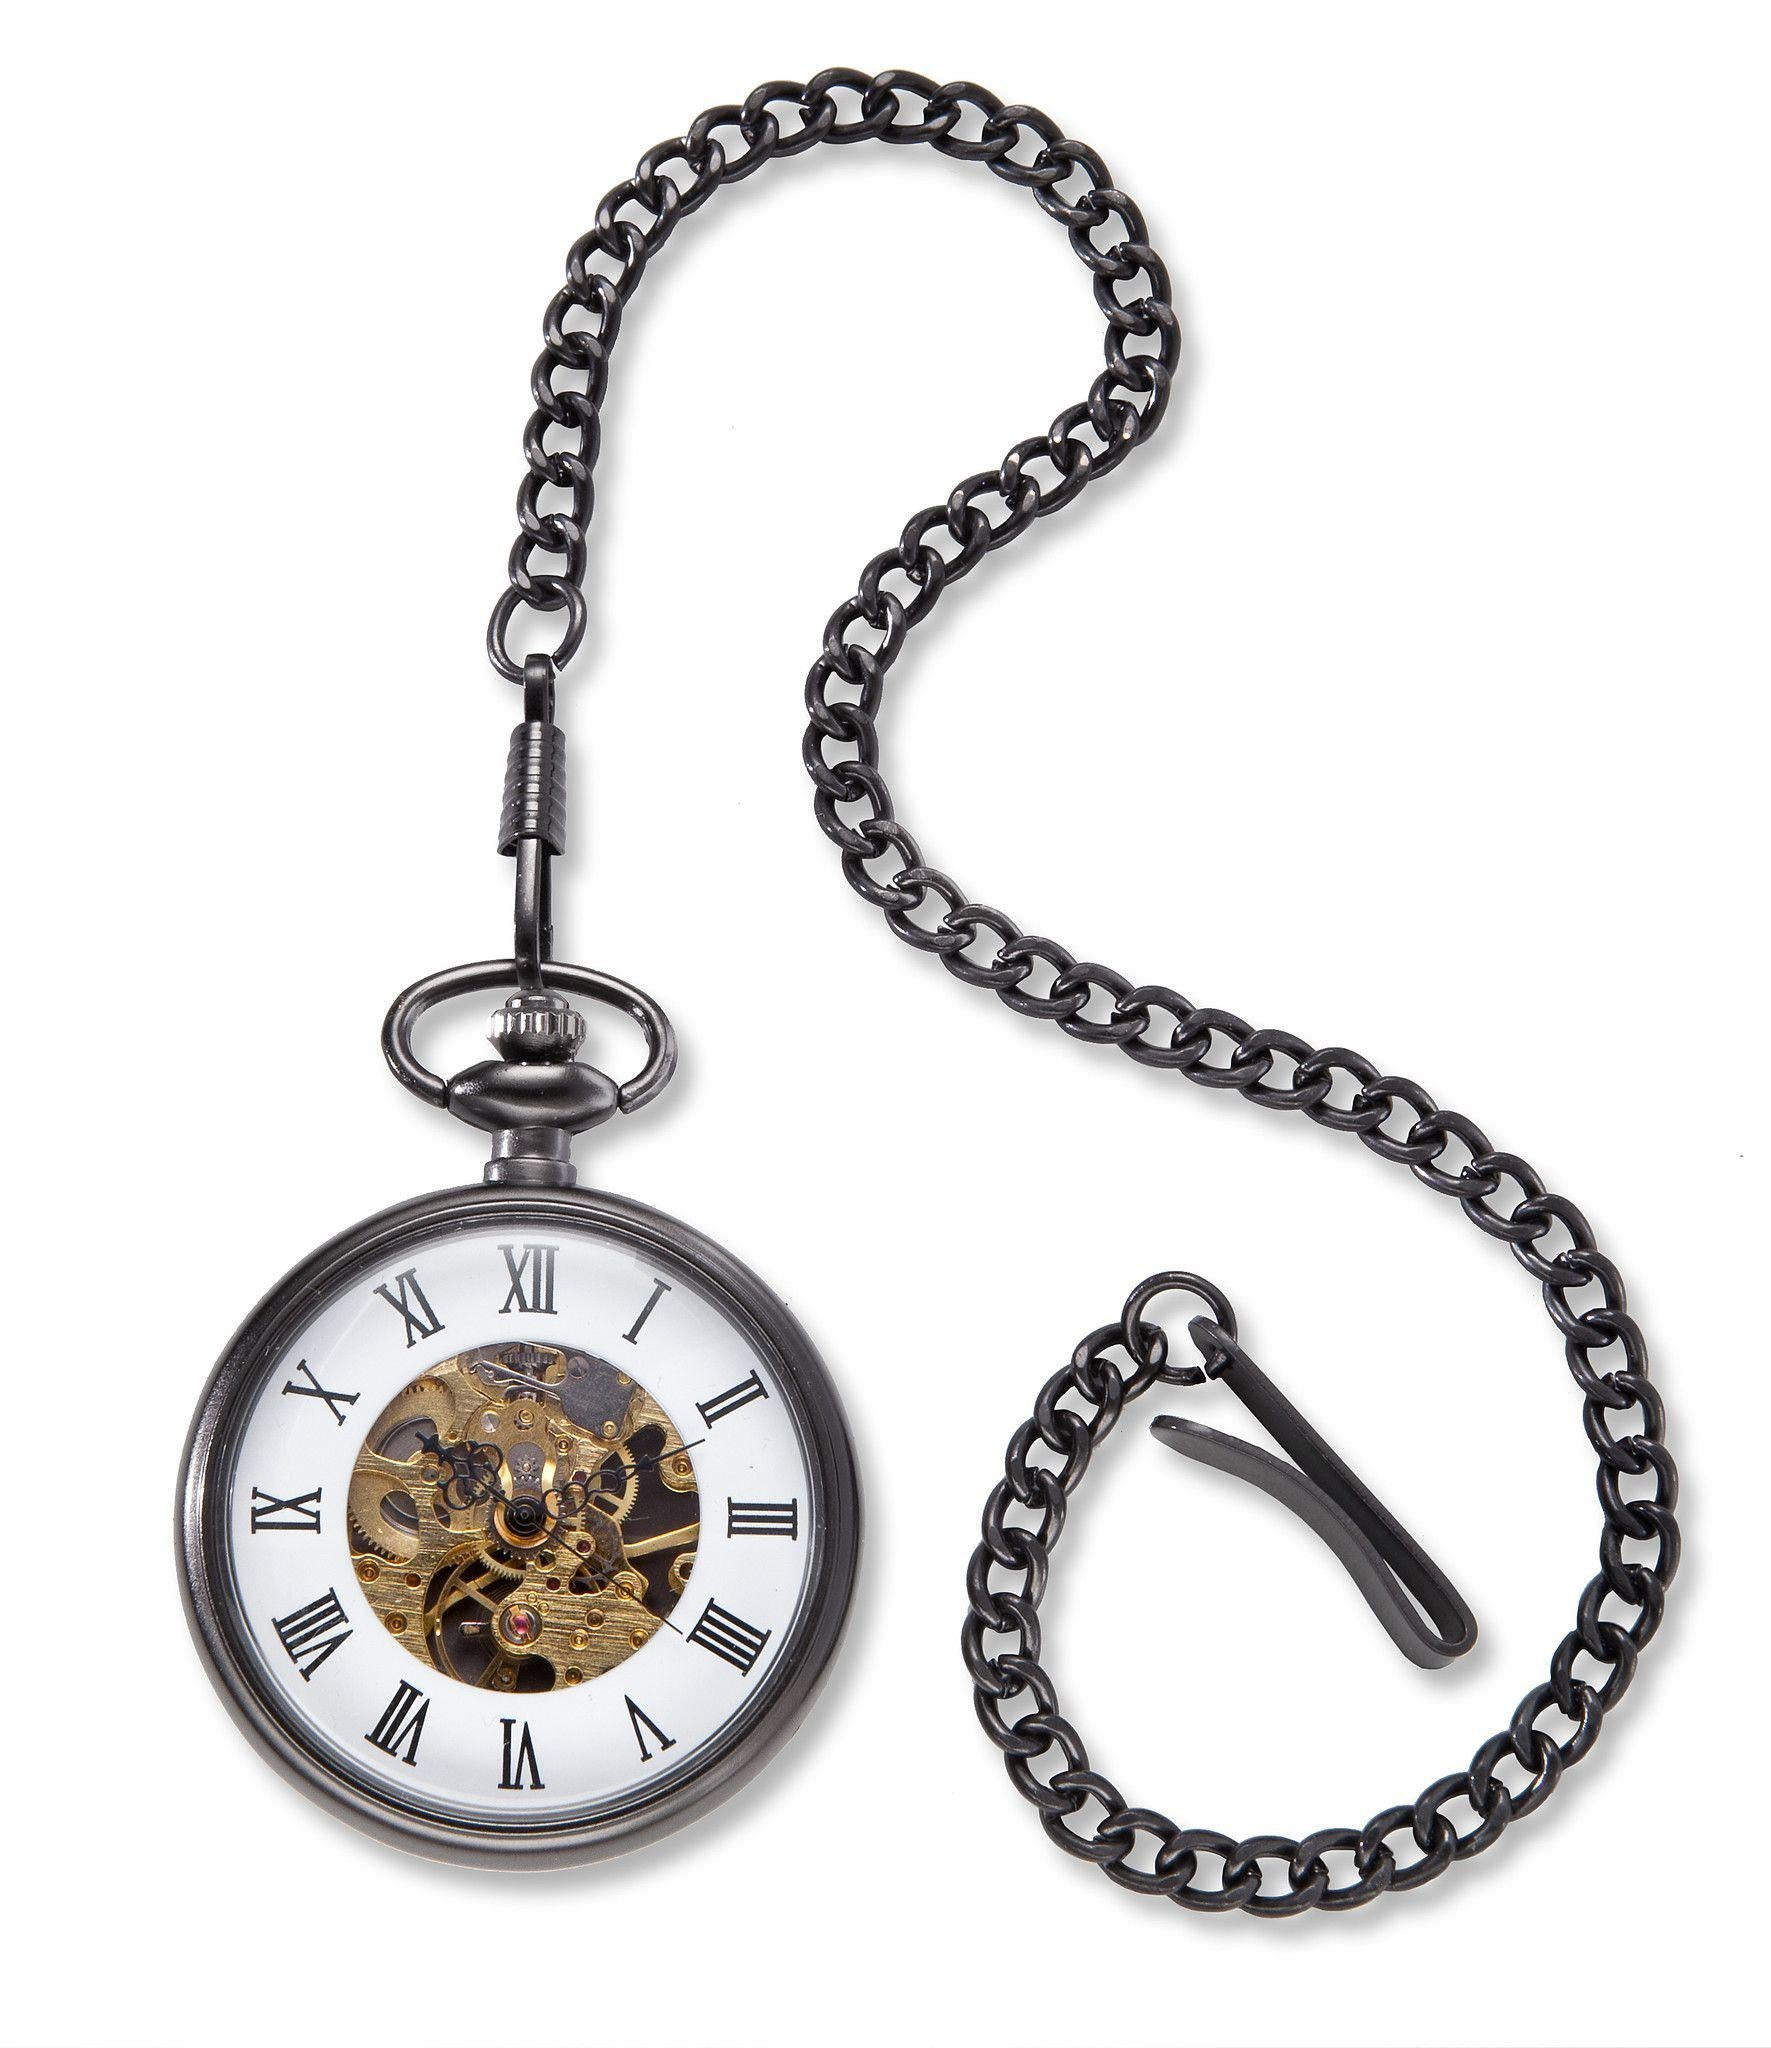 Personalized Gears Gunmetal Pocket Watch